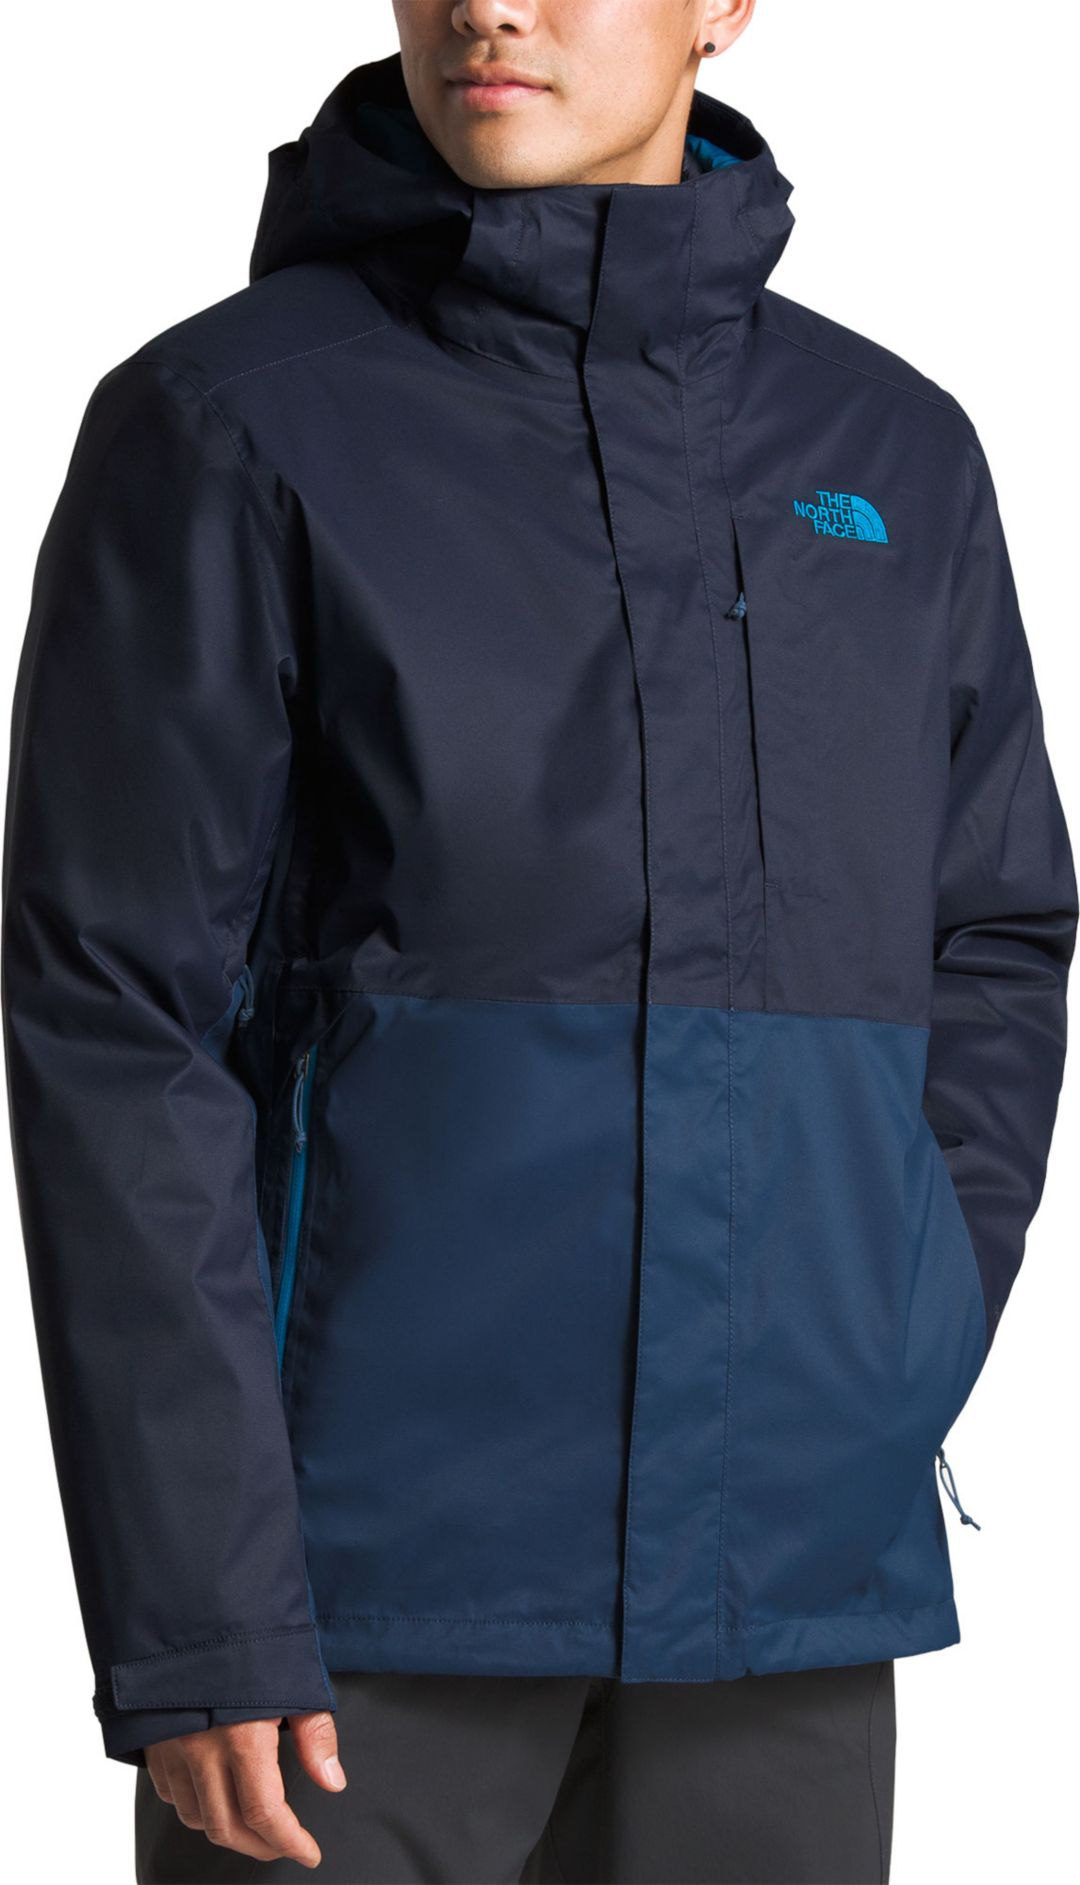 57226e700 The North Face Men's Altier Triclimate Jacket